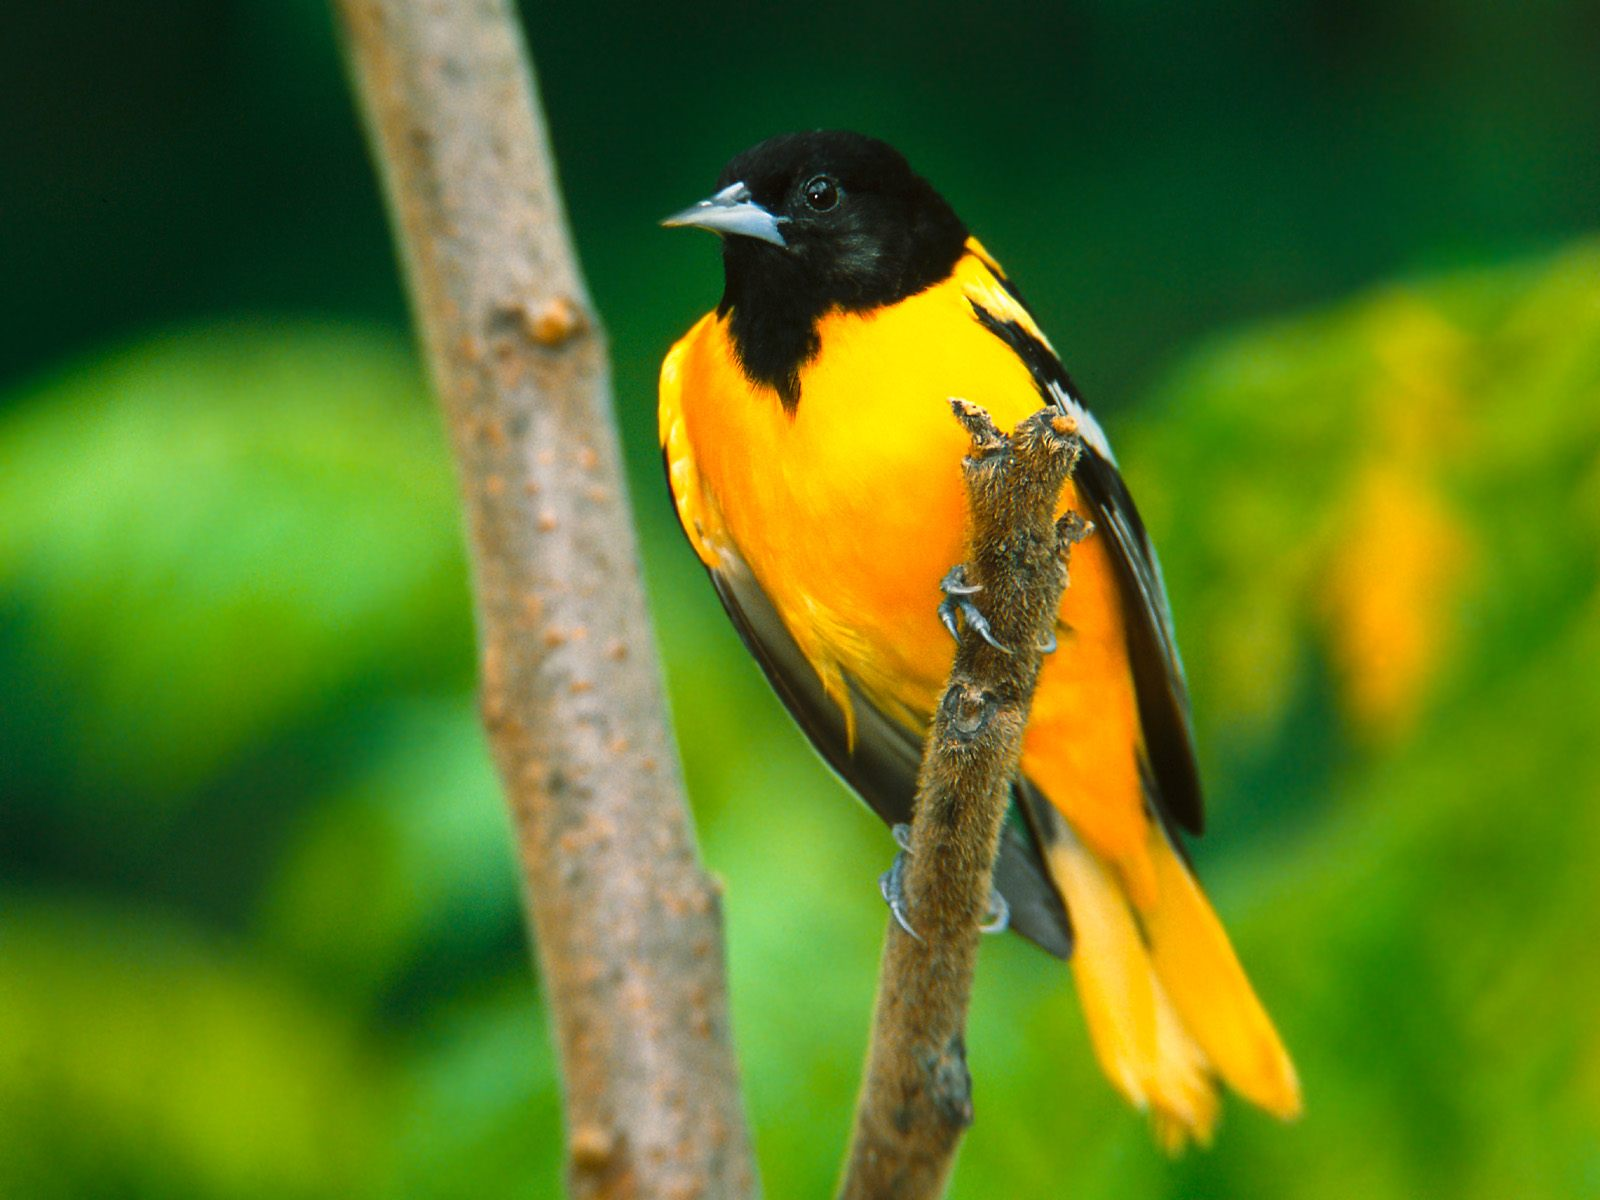 Full Hd Bird Pictures Full Hd Pictures